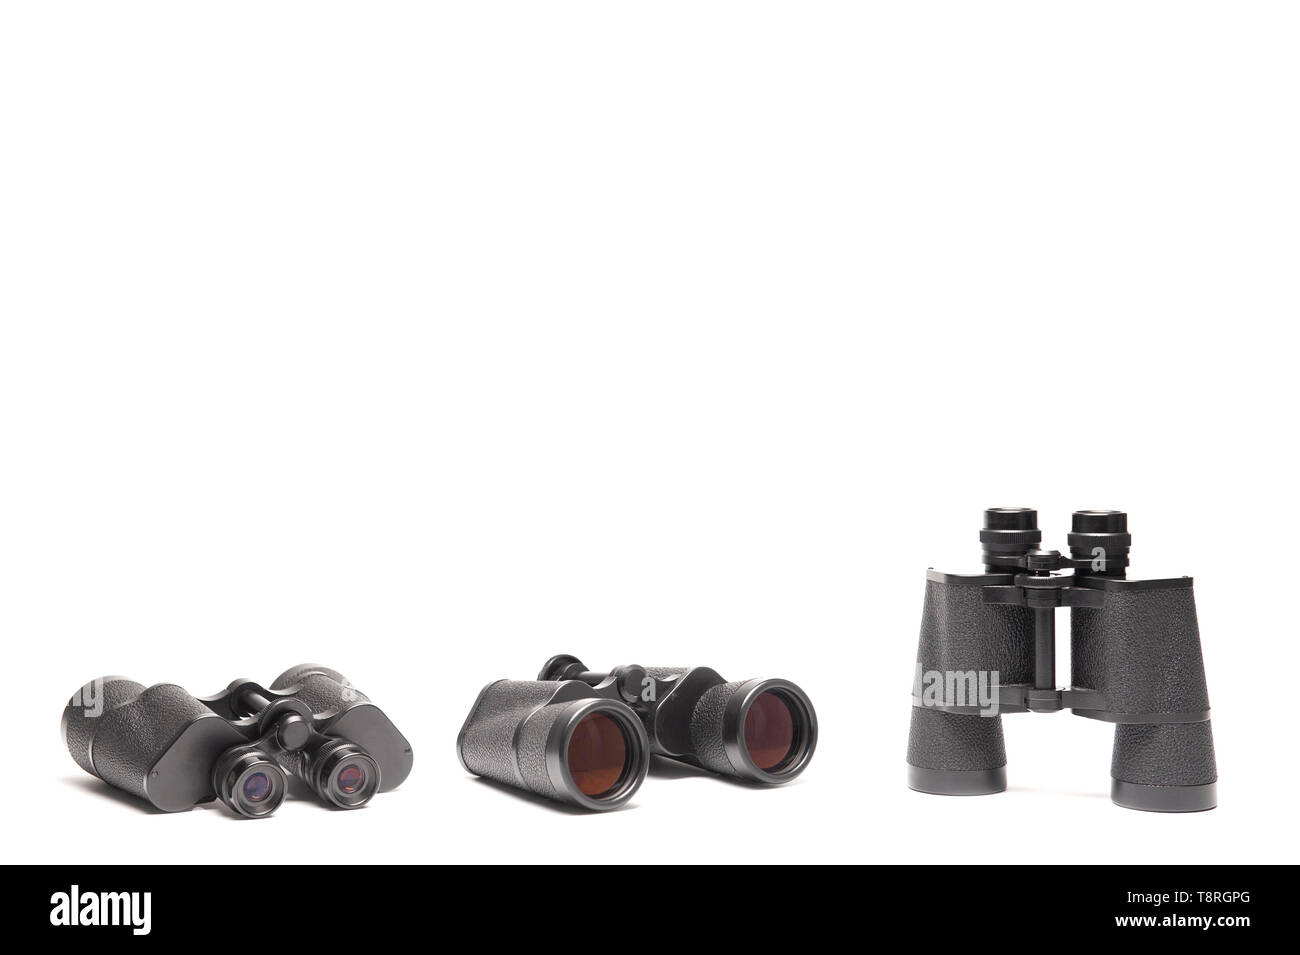 Three angles of vintage binoculars isolated on white background with texting space, travelling concept. - Stock Image